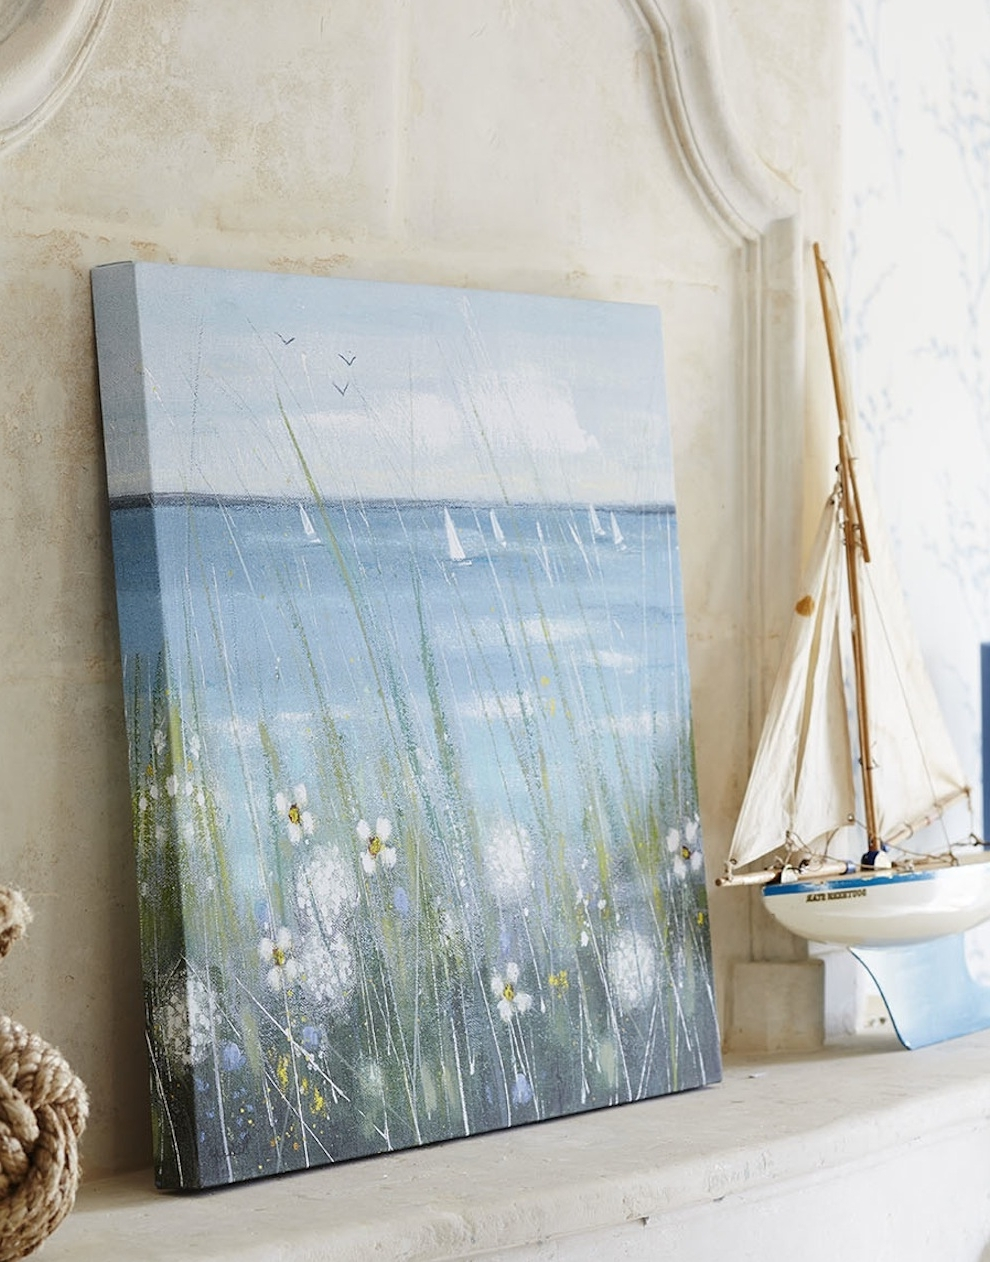 Newest 4 Ways To Wake Up Your Walls – The Laura Ashley Blog In Duck Egg Blue Wall Art (View 7 of 15)